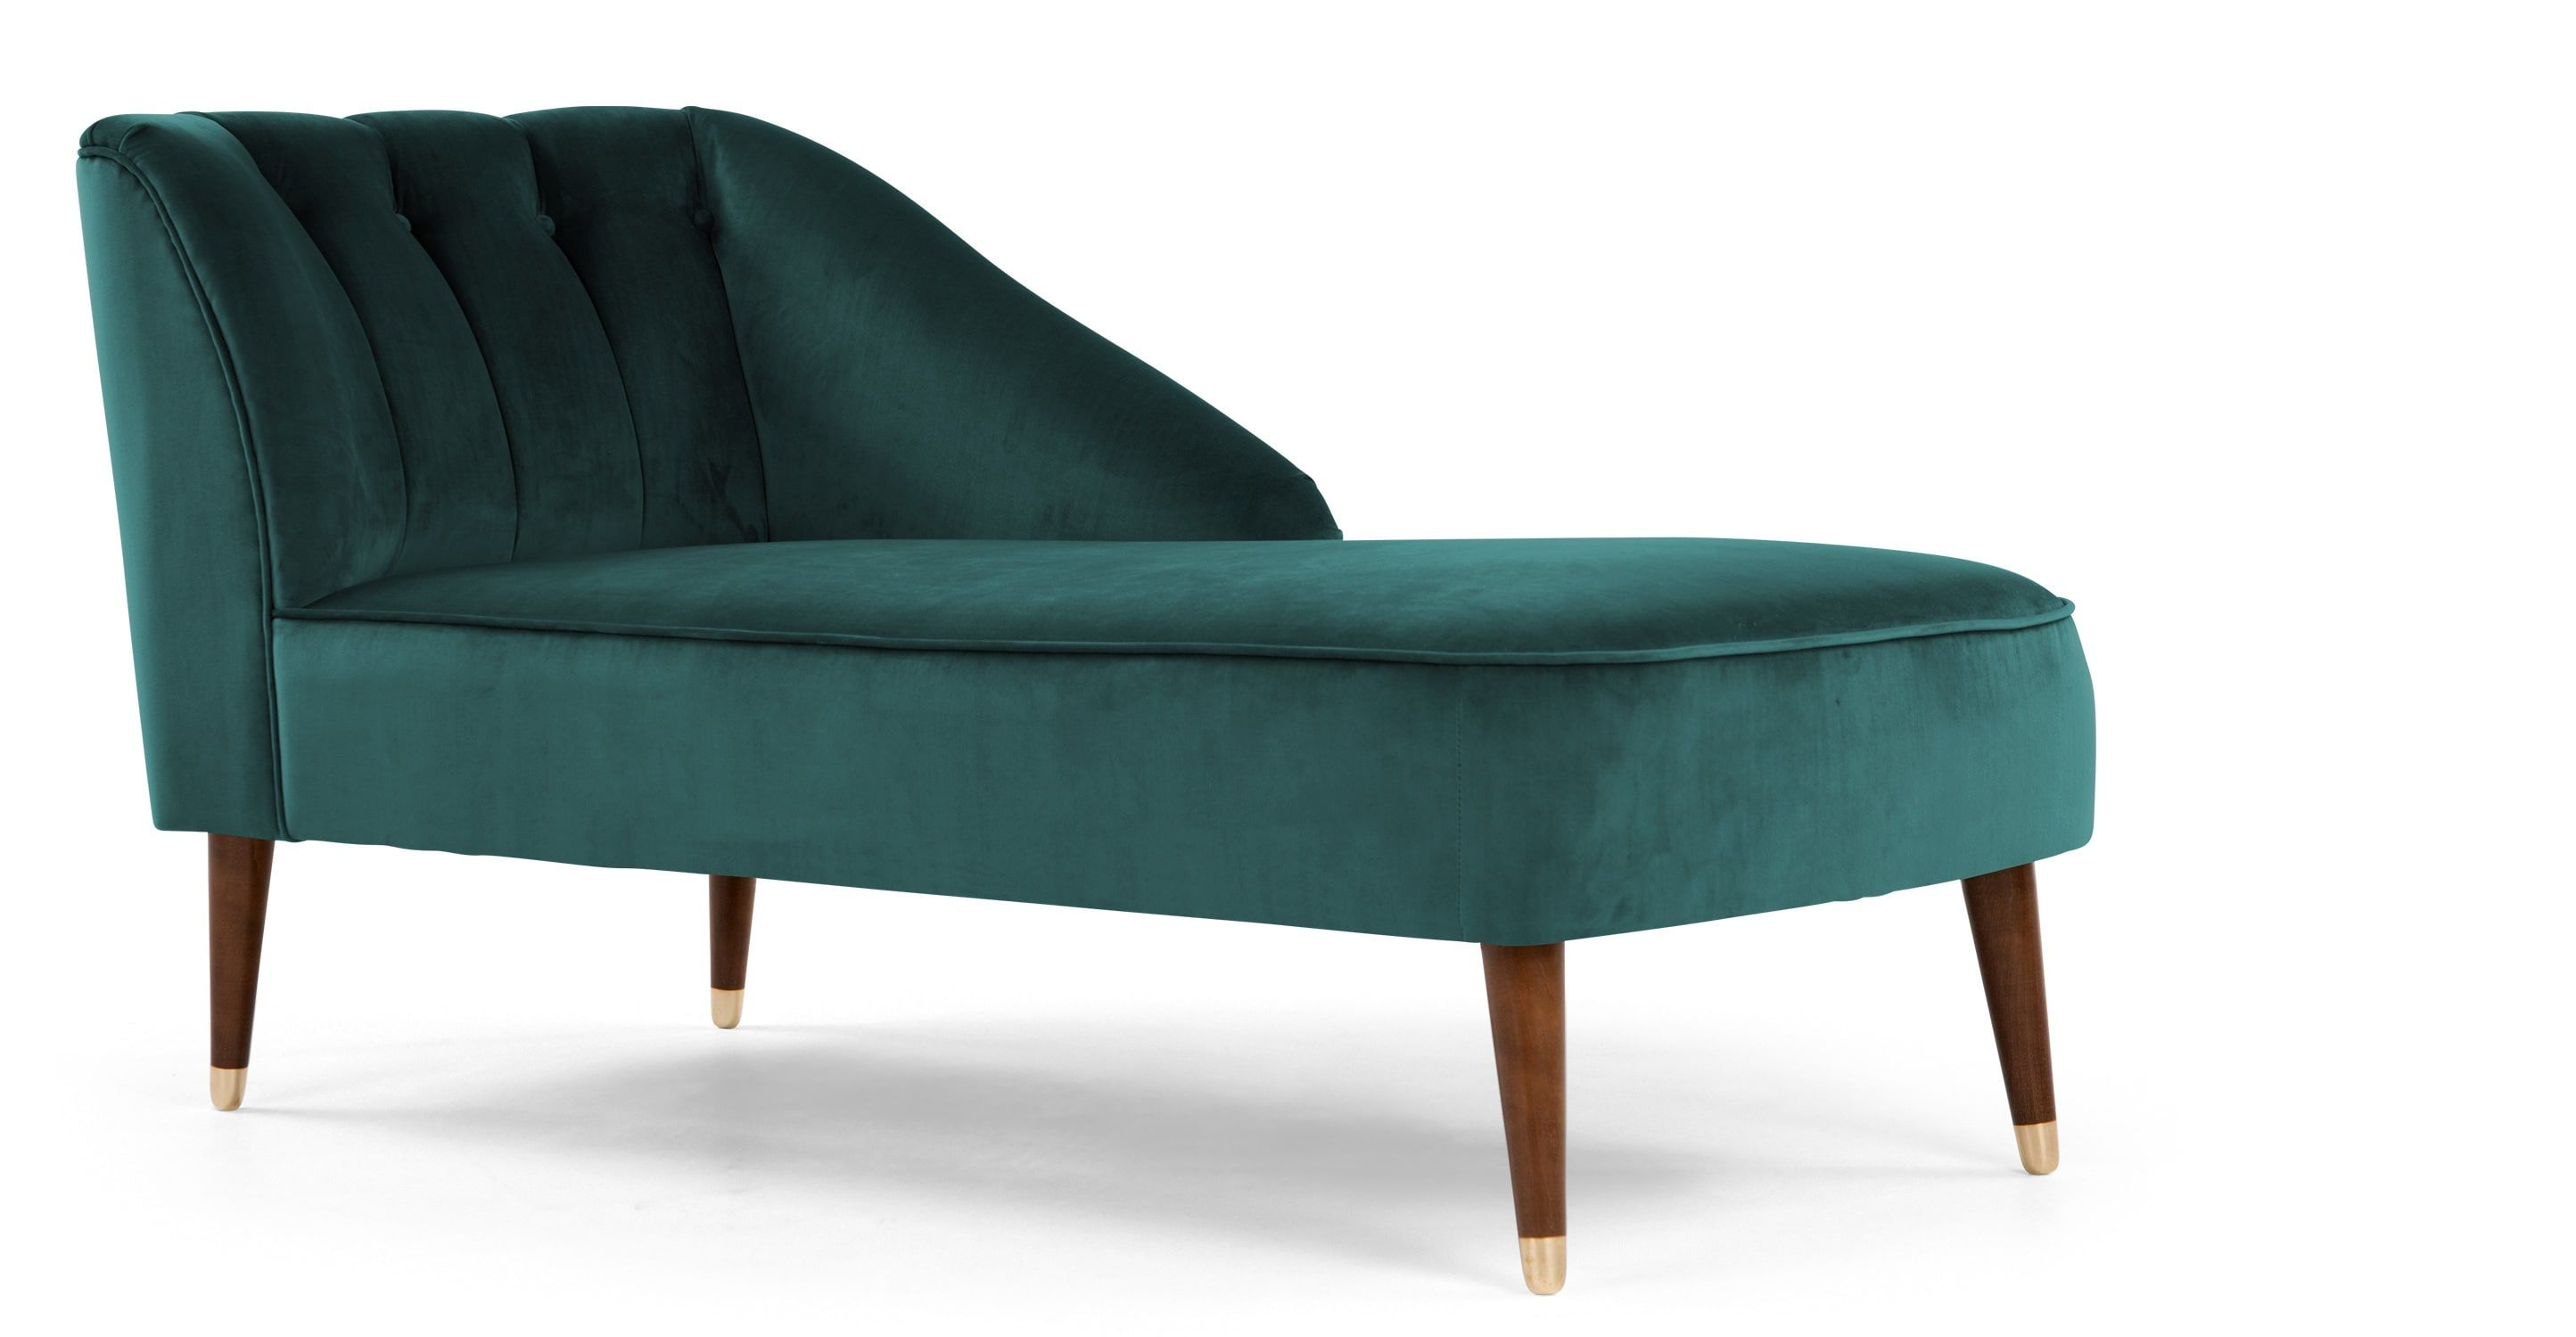 Chaiselongue Recamiere Custom Made Margot Right Hand Facing Chaise Peacock Blue Velvet